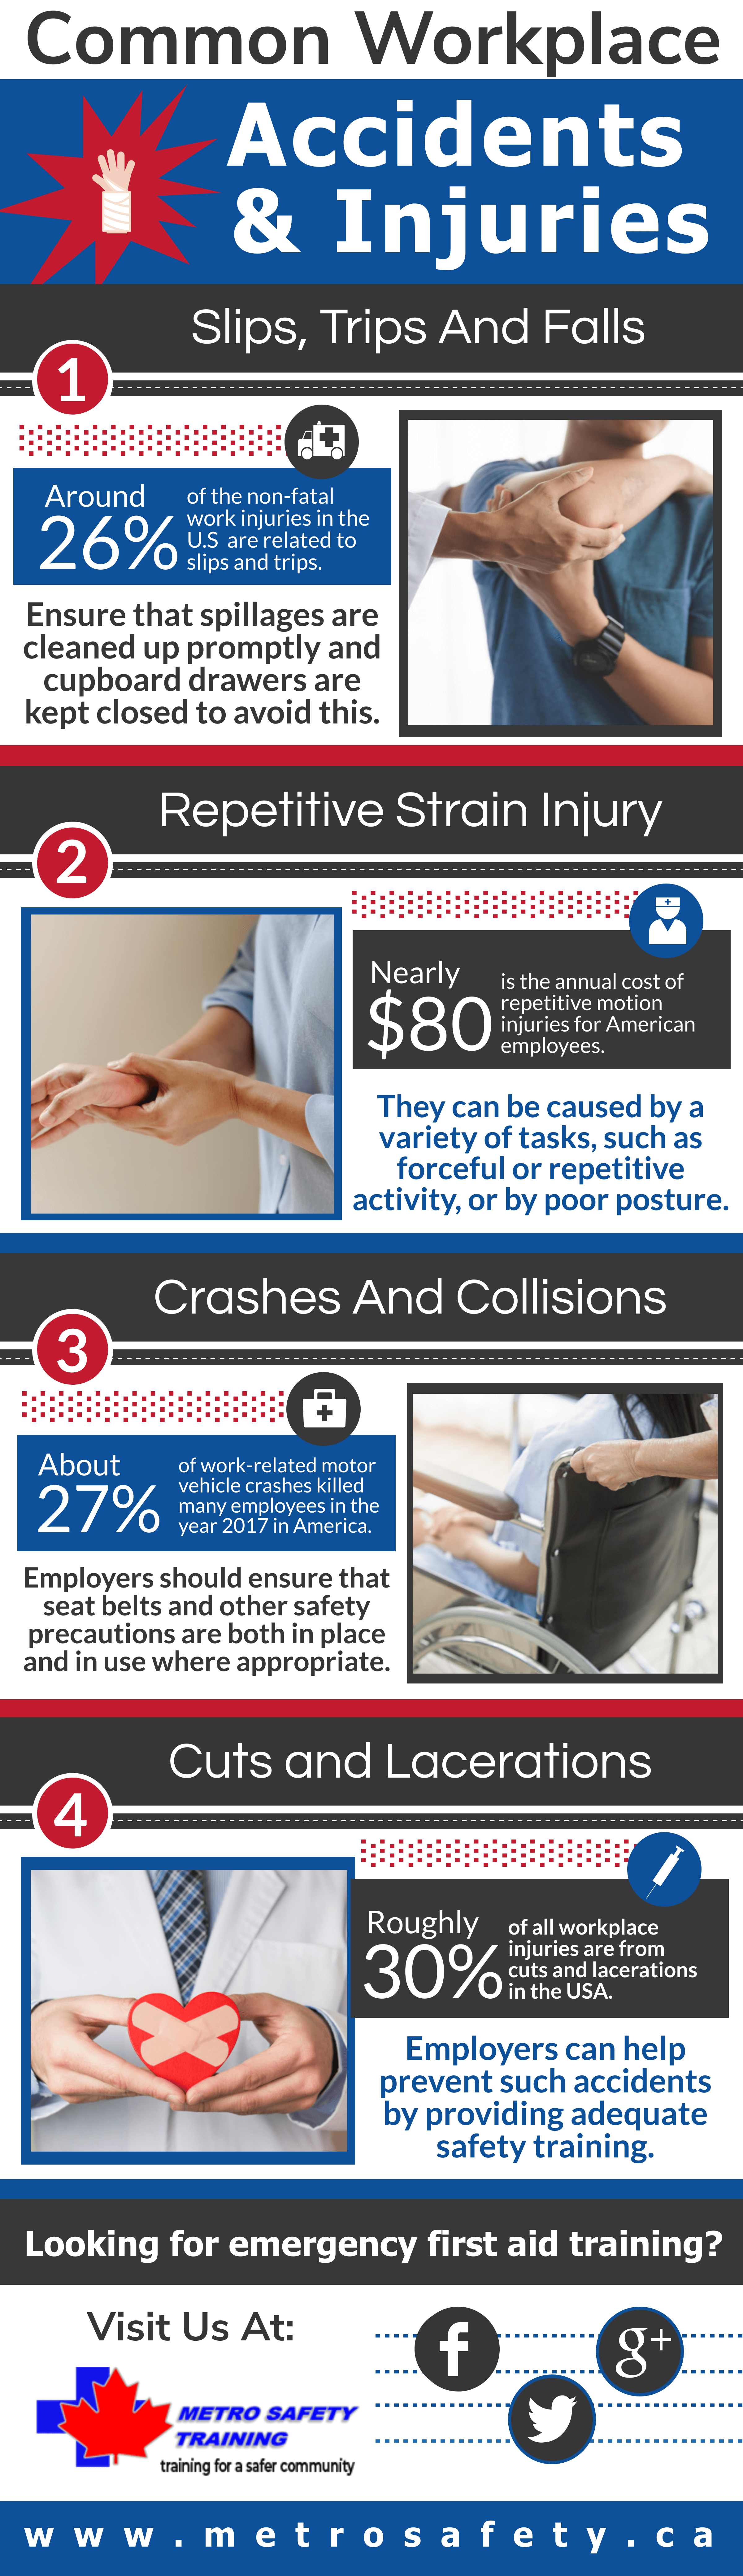 Common-Workplacea-Accidents-and-injury